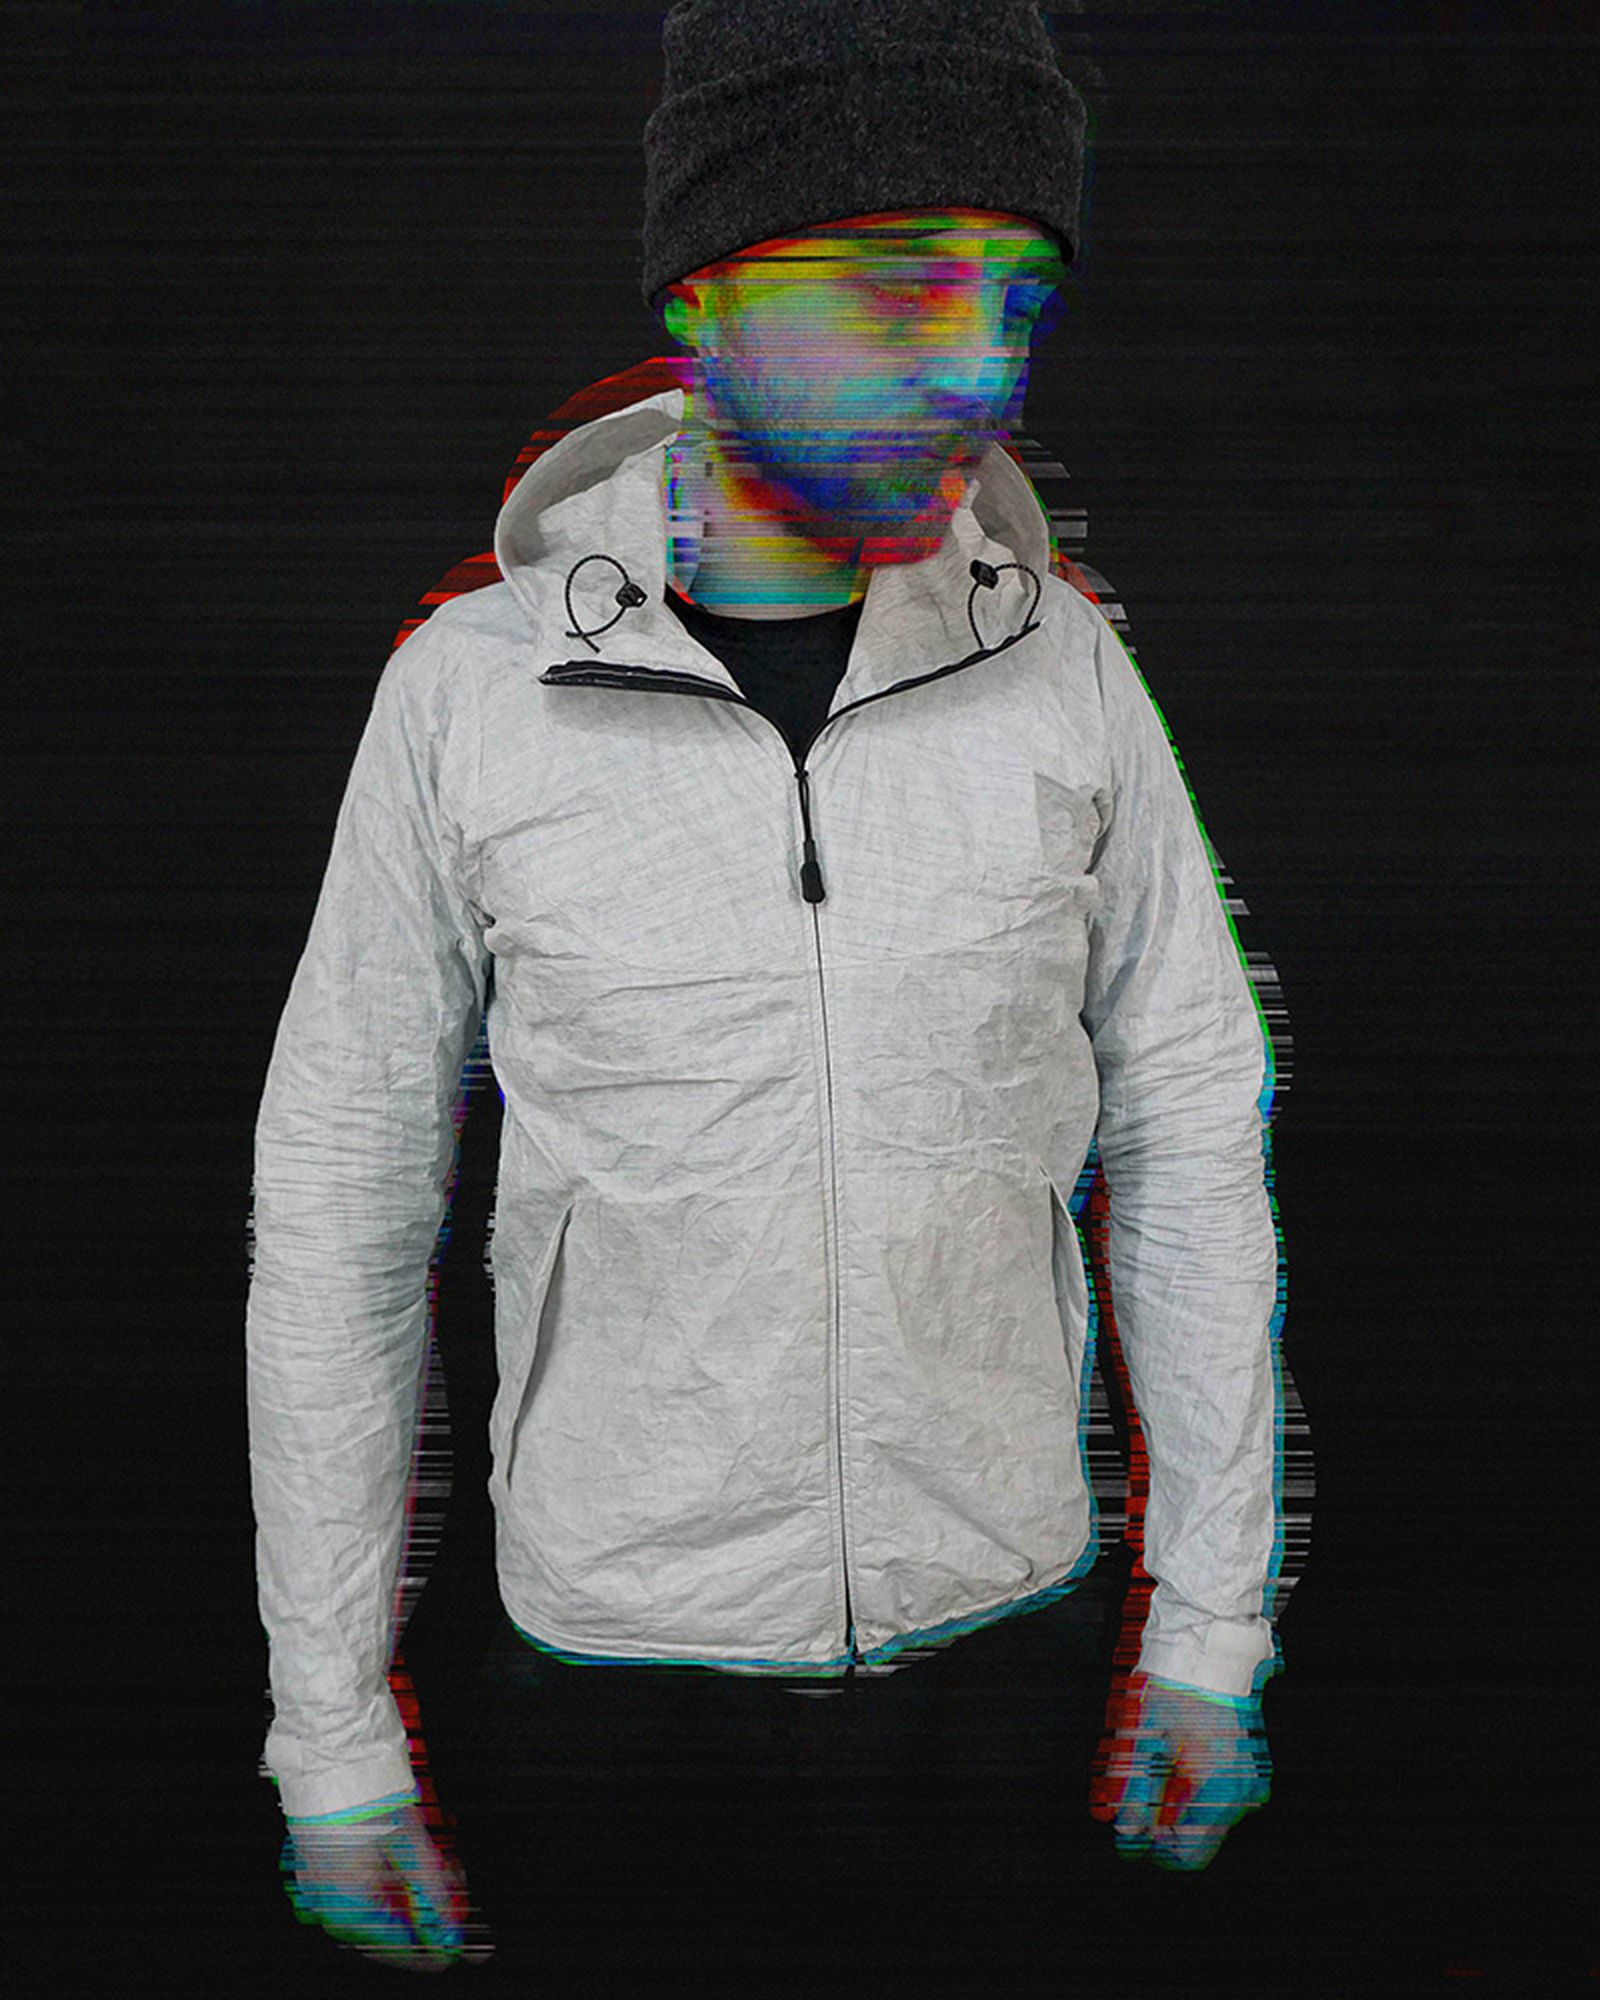 The world's lightest technical jacket, designed by Vancouver-based designer Ender Severin.